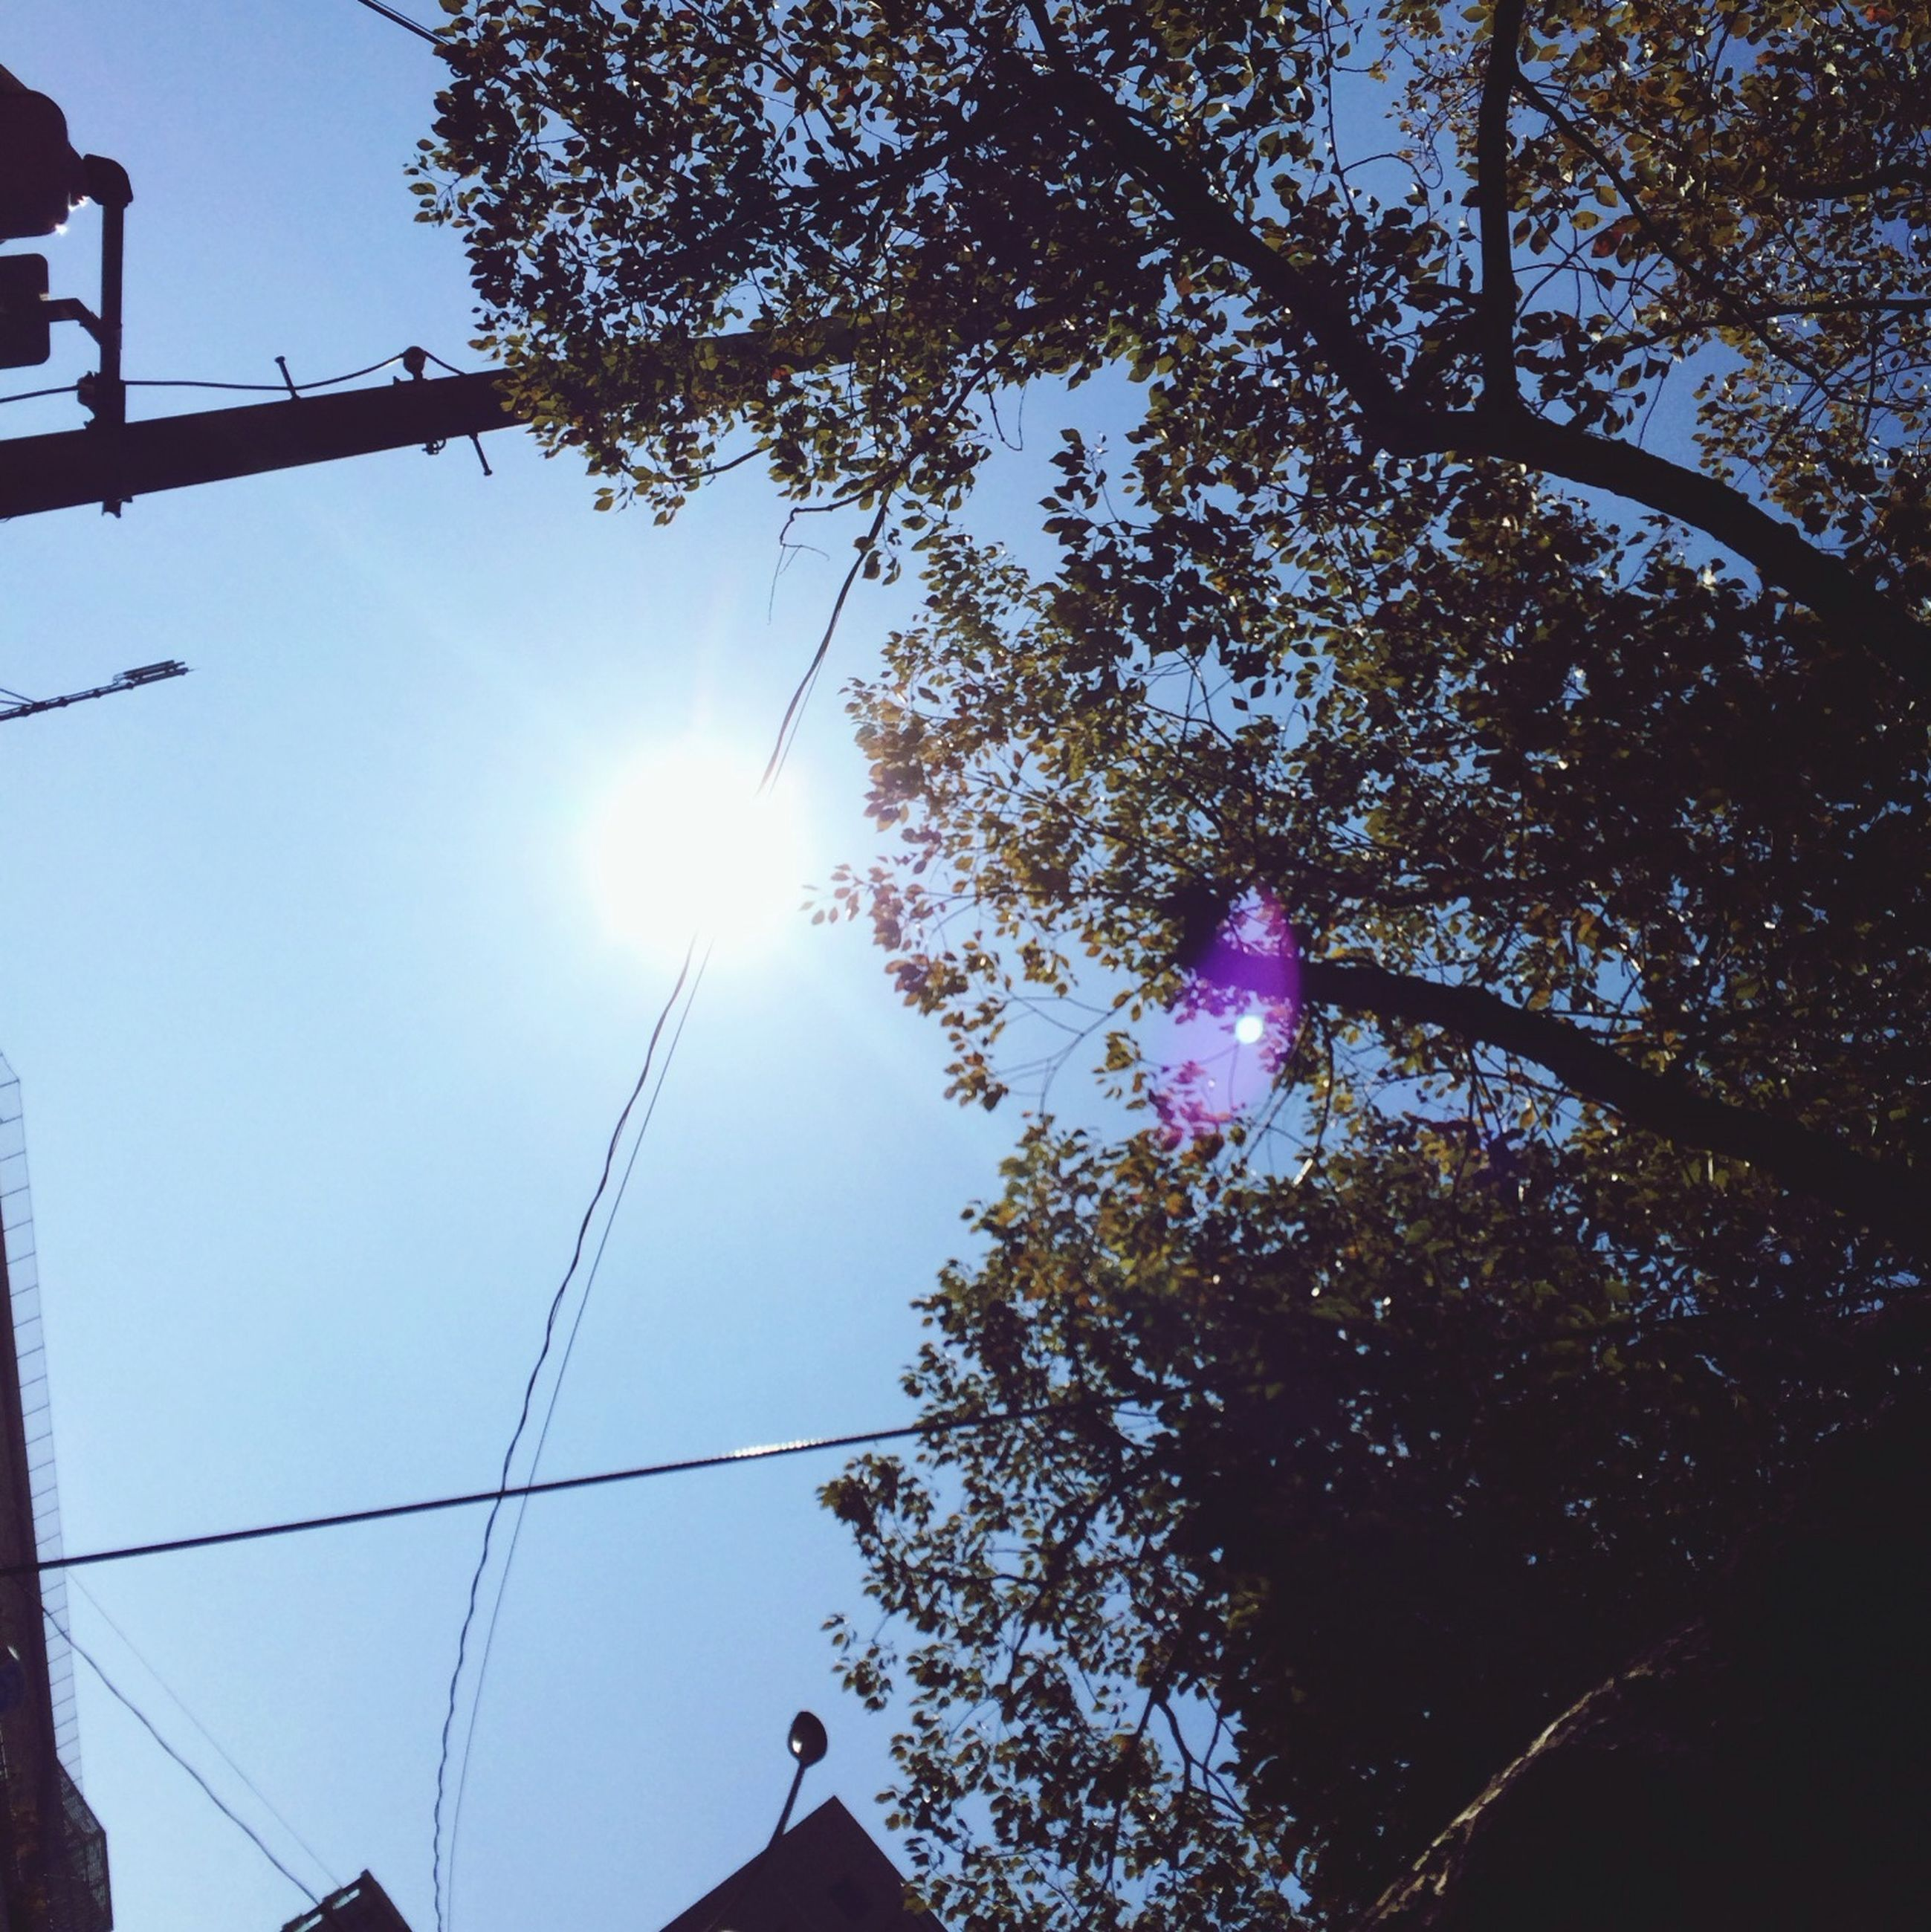 sun, low angle view, sunbeam, lens flare, sunlight, tree, silhouette, bright, sky, clear sky, nature, sunny, beauty in nature, branch, blue, outdoors, street light, growth, day, no people